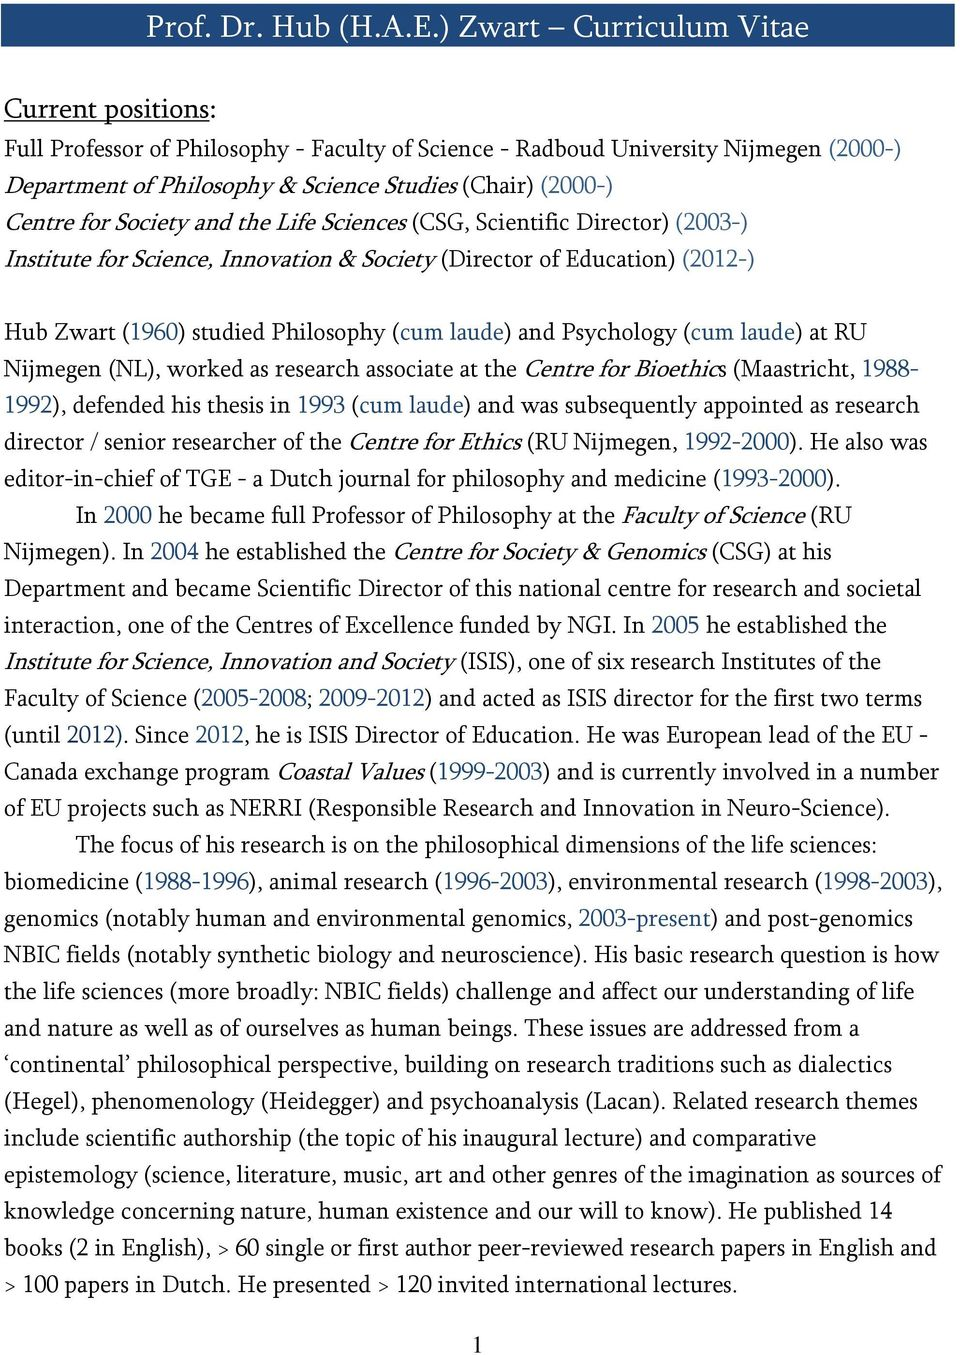 for Society and the Life Sciences (CSG, Scientific Director) (2003-) Institute for Science, Innovation & Society (Director of Education) (2012-) Hub Zwart (1960) studied Philosophy (cum laude) and